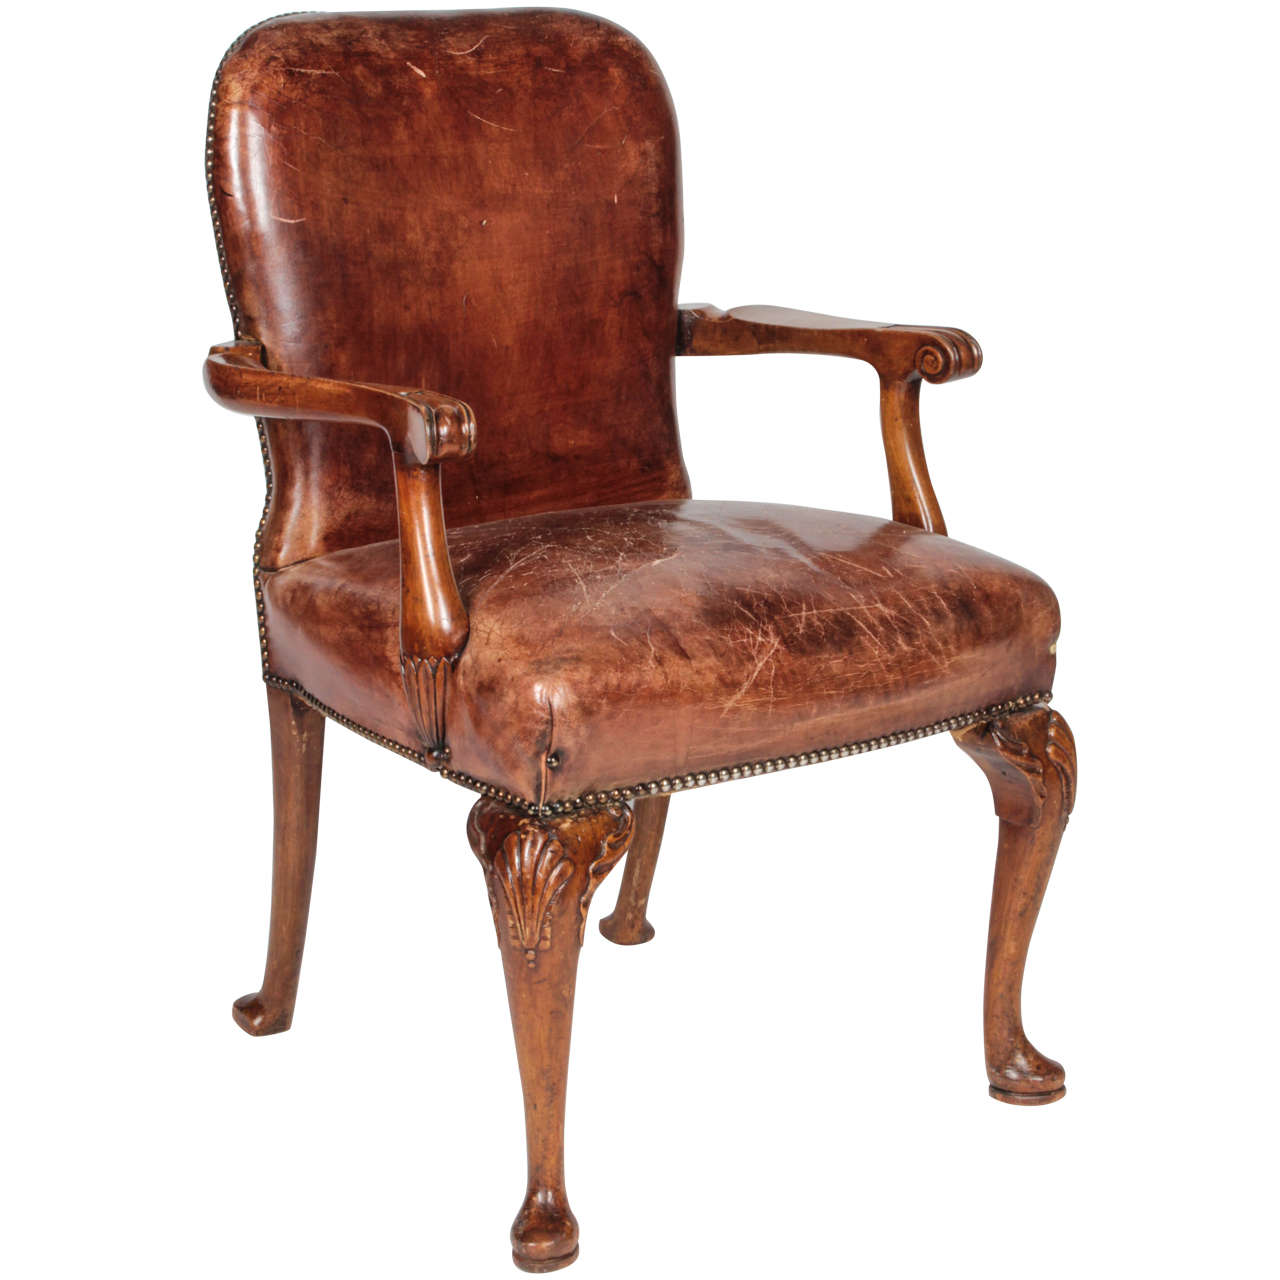 Queen Anne Style Distressed Leather Arm Chair at 1stdibs